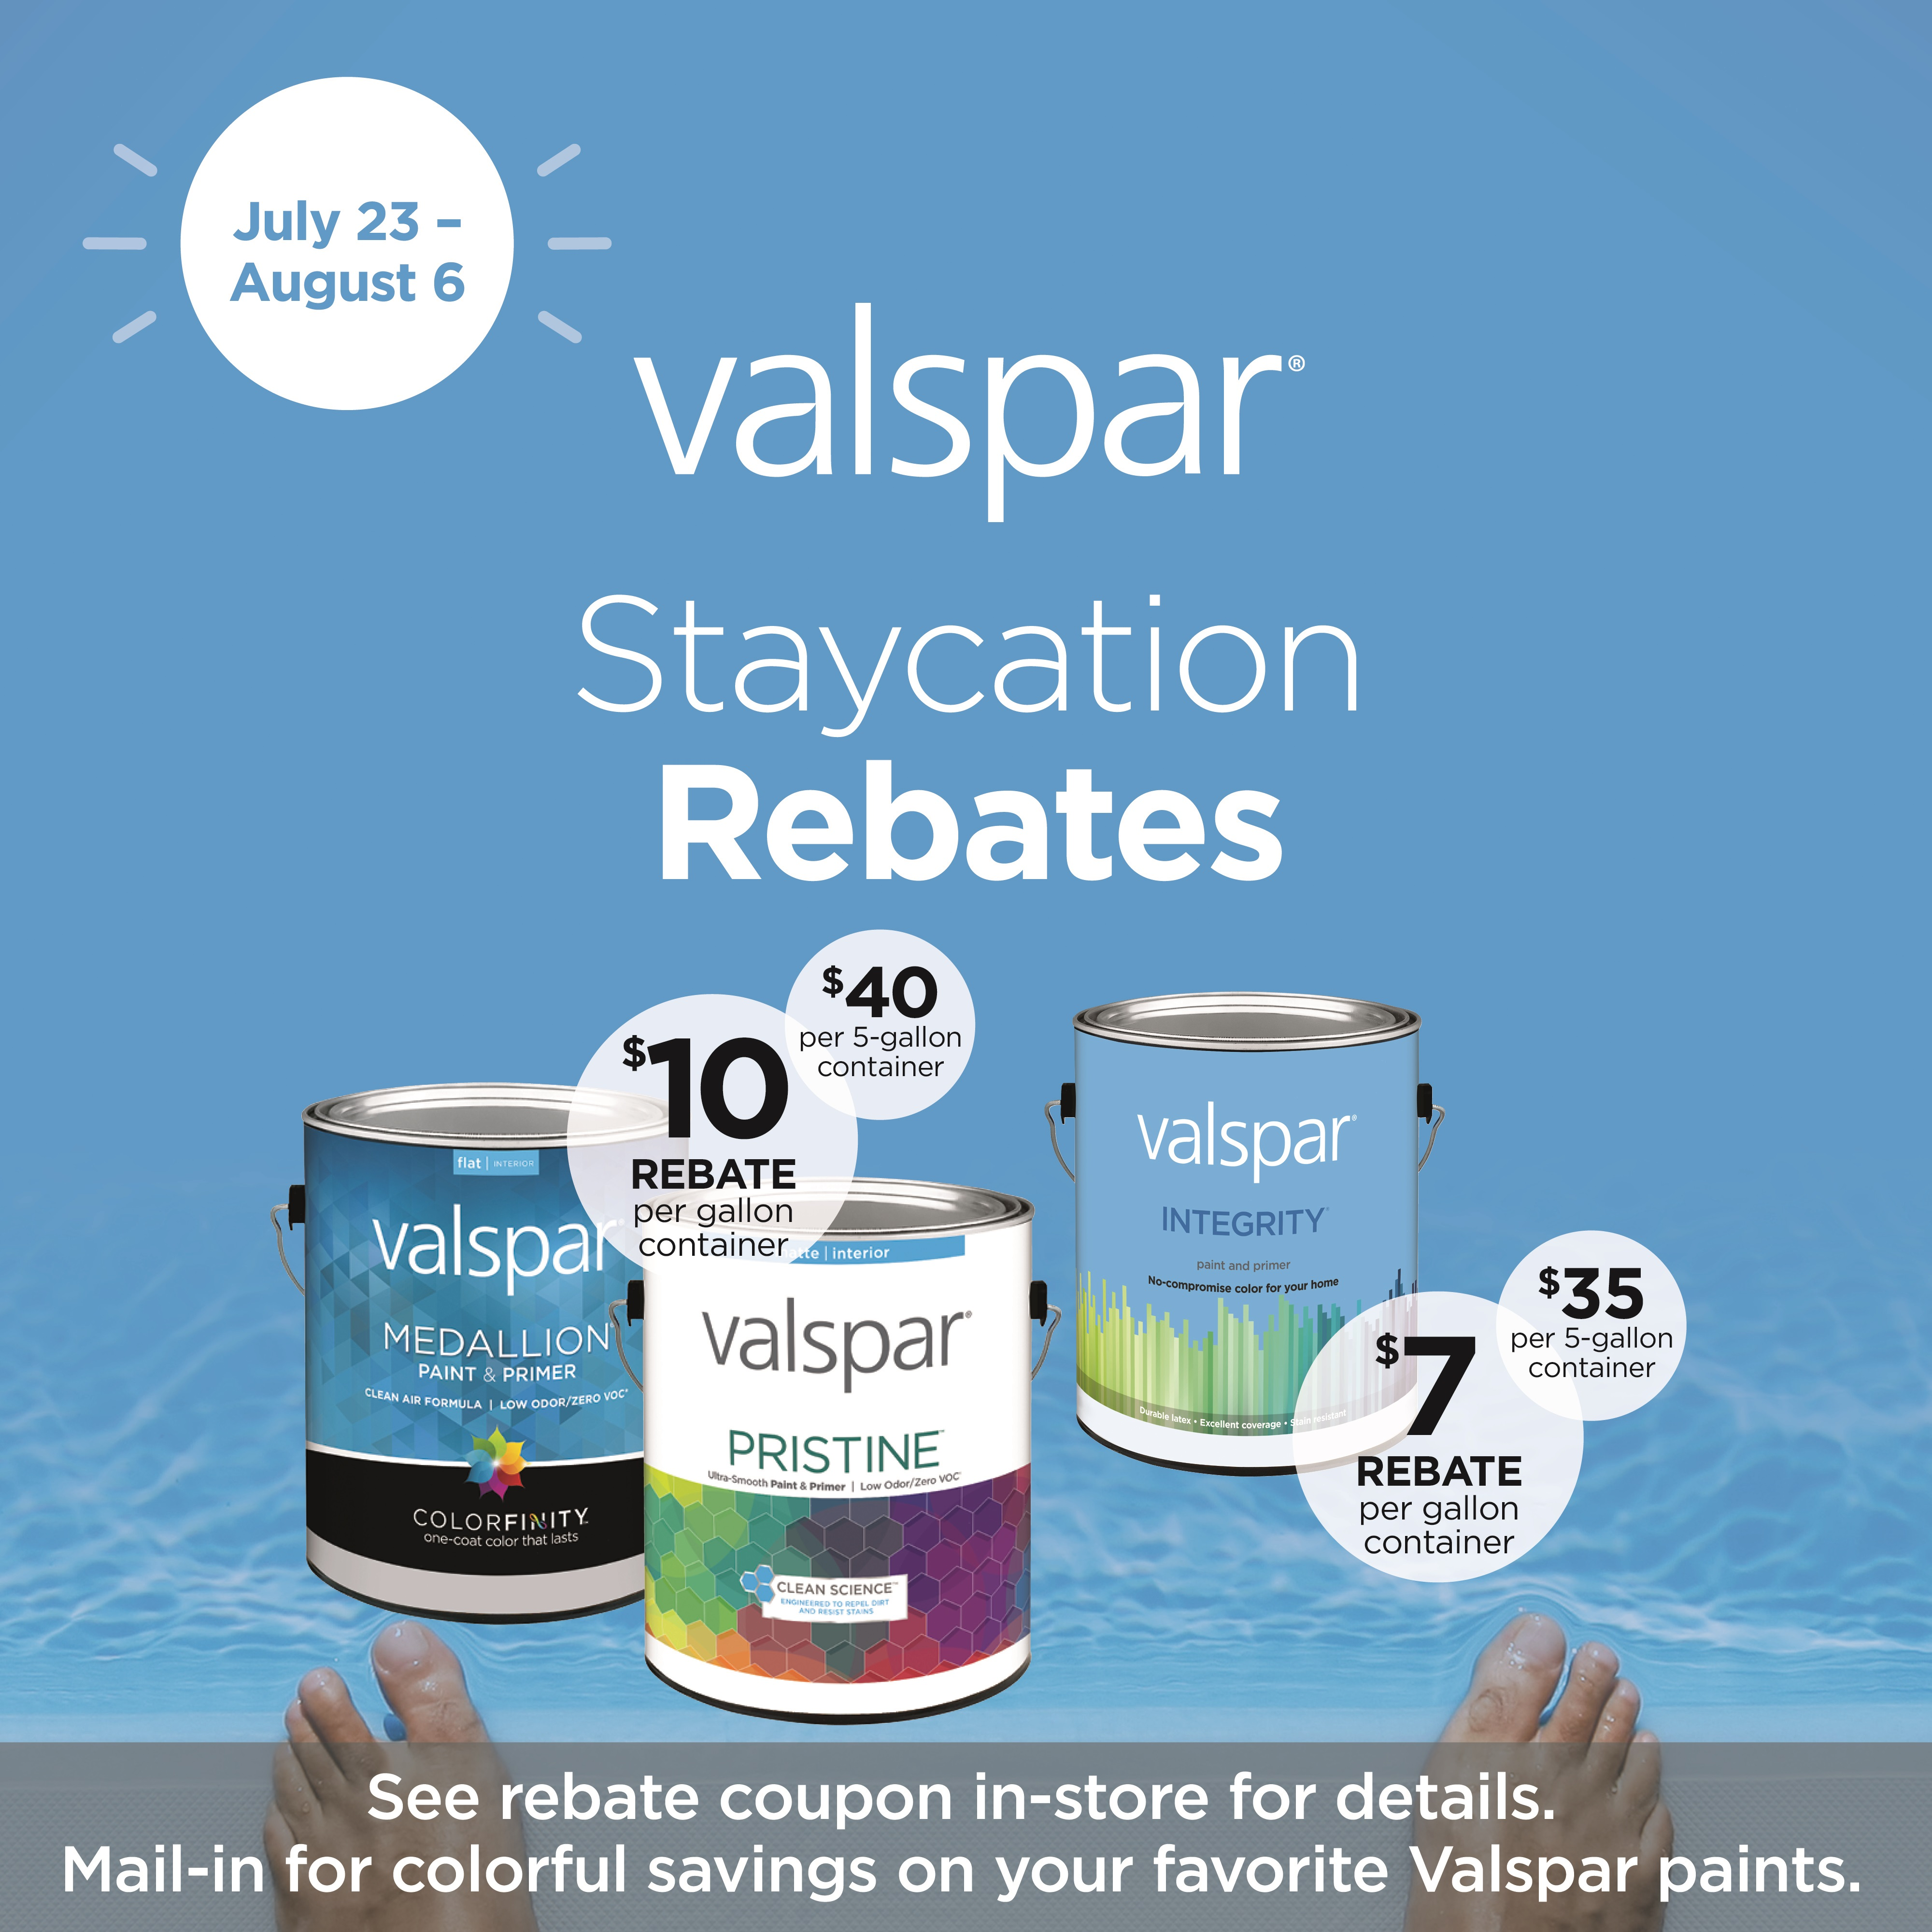 Valspar Paint | Where to Buy Valspar Paint | Valspar Signature Paint